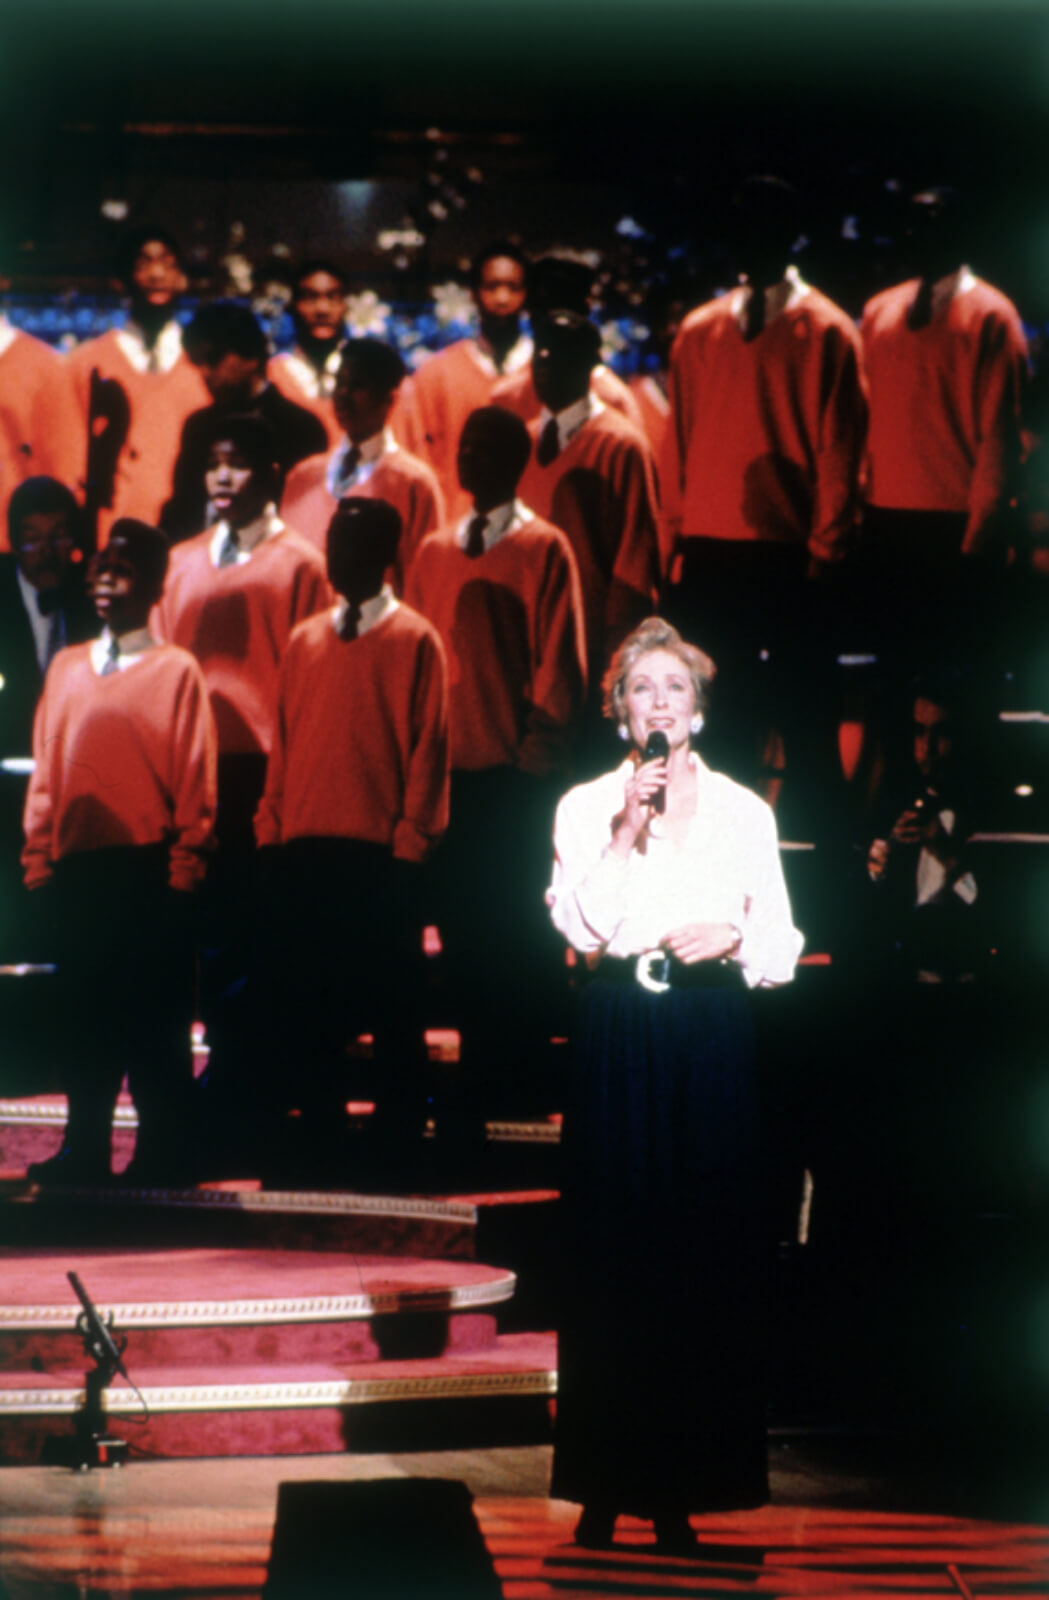 Betty Buckley, downstage and in a white blouse and black pants, and The Boys Choir Of Harlem. They are upstage in reddish orange robes and standing on risers.